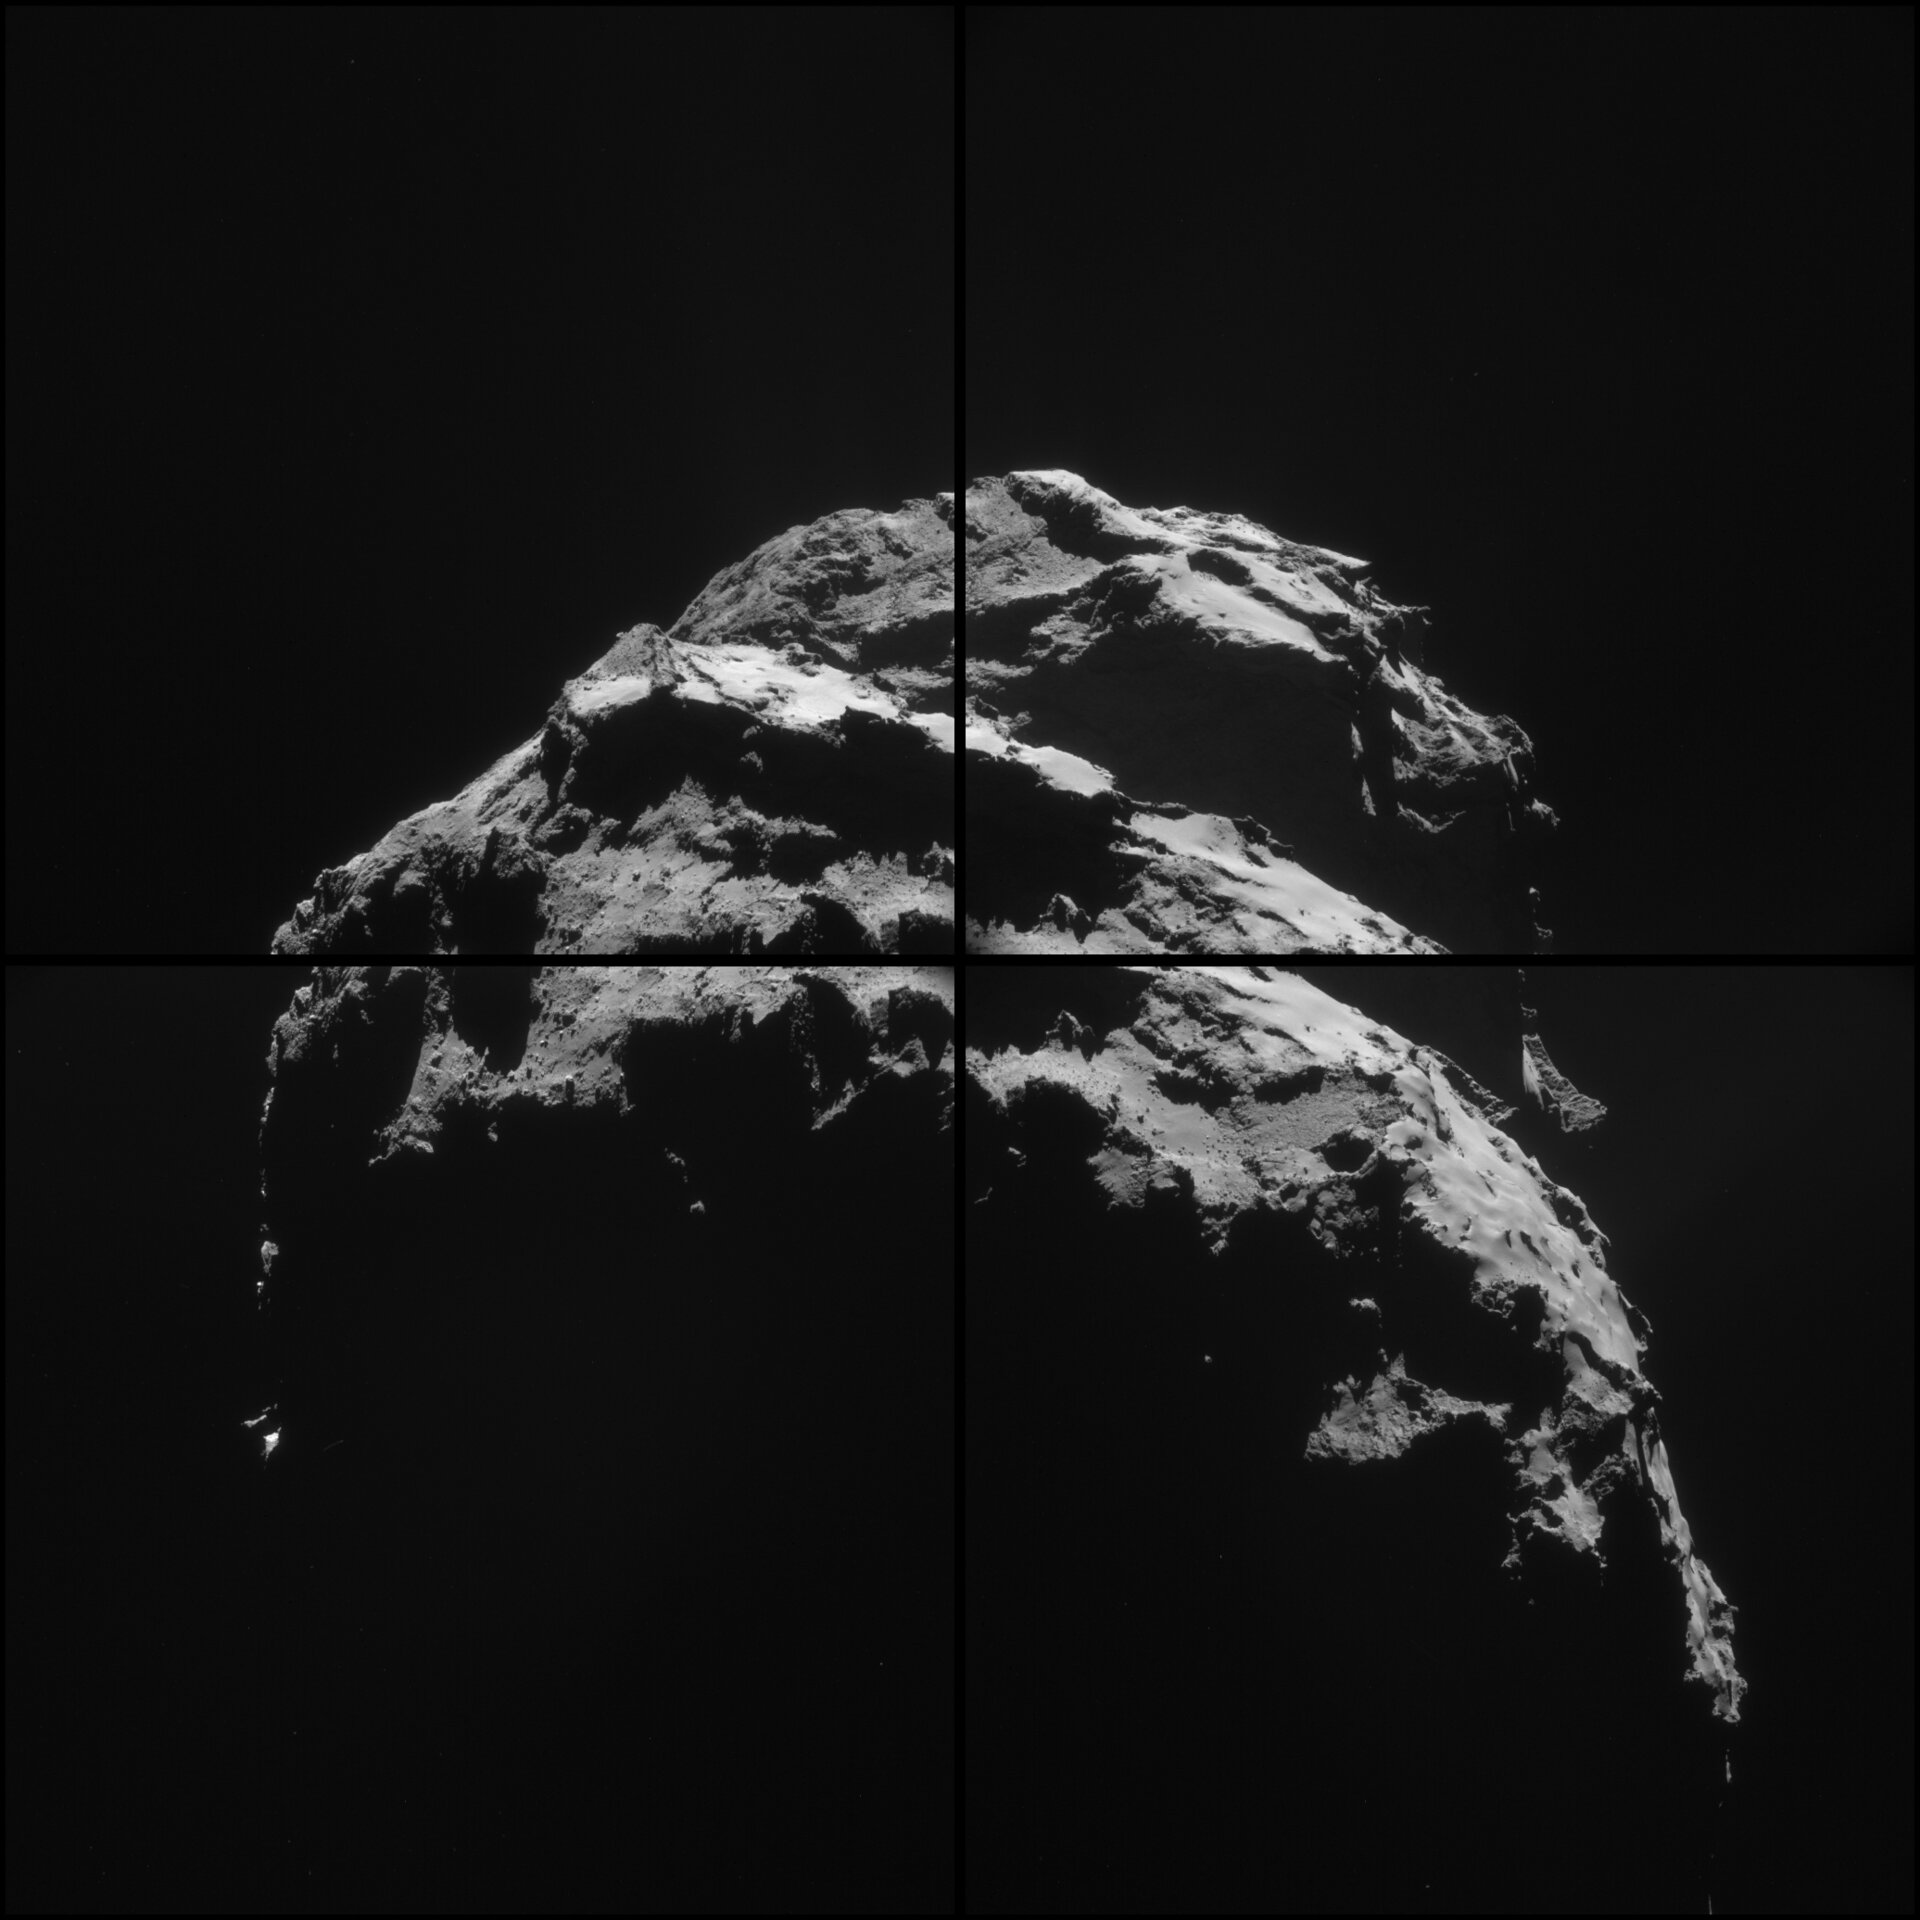 Comet on 26 January 2015 – NavCam